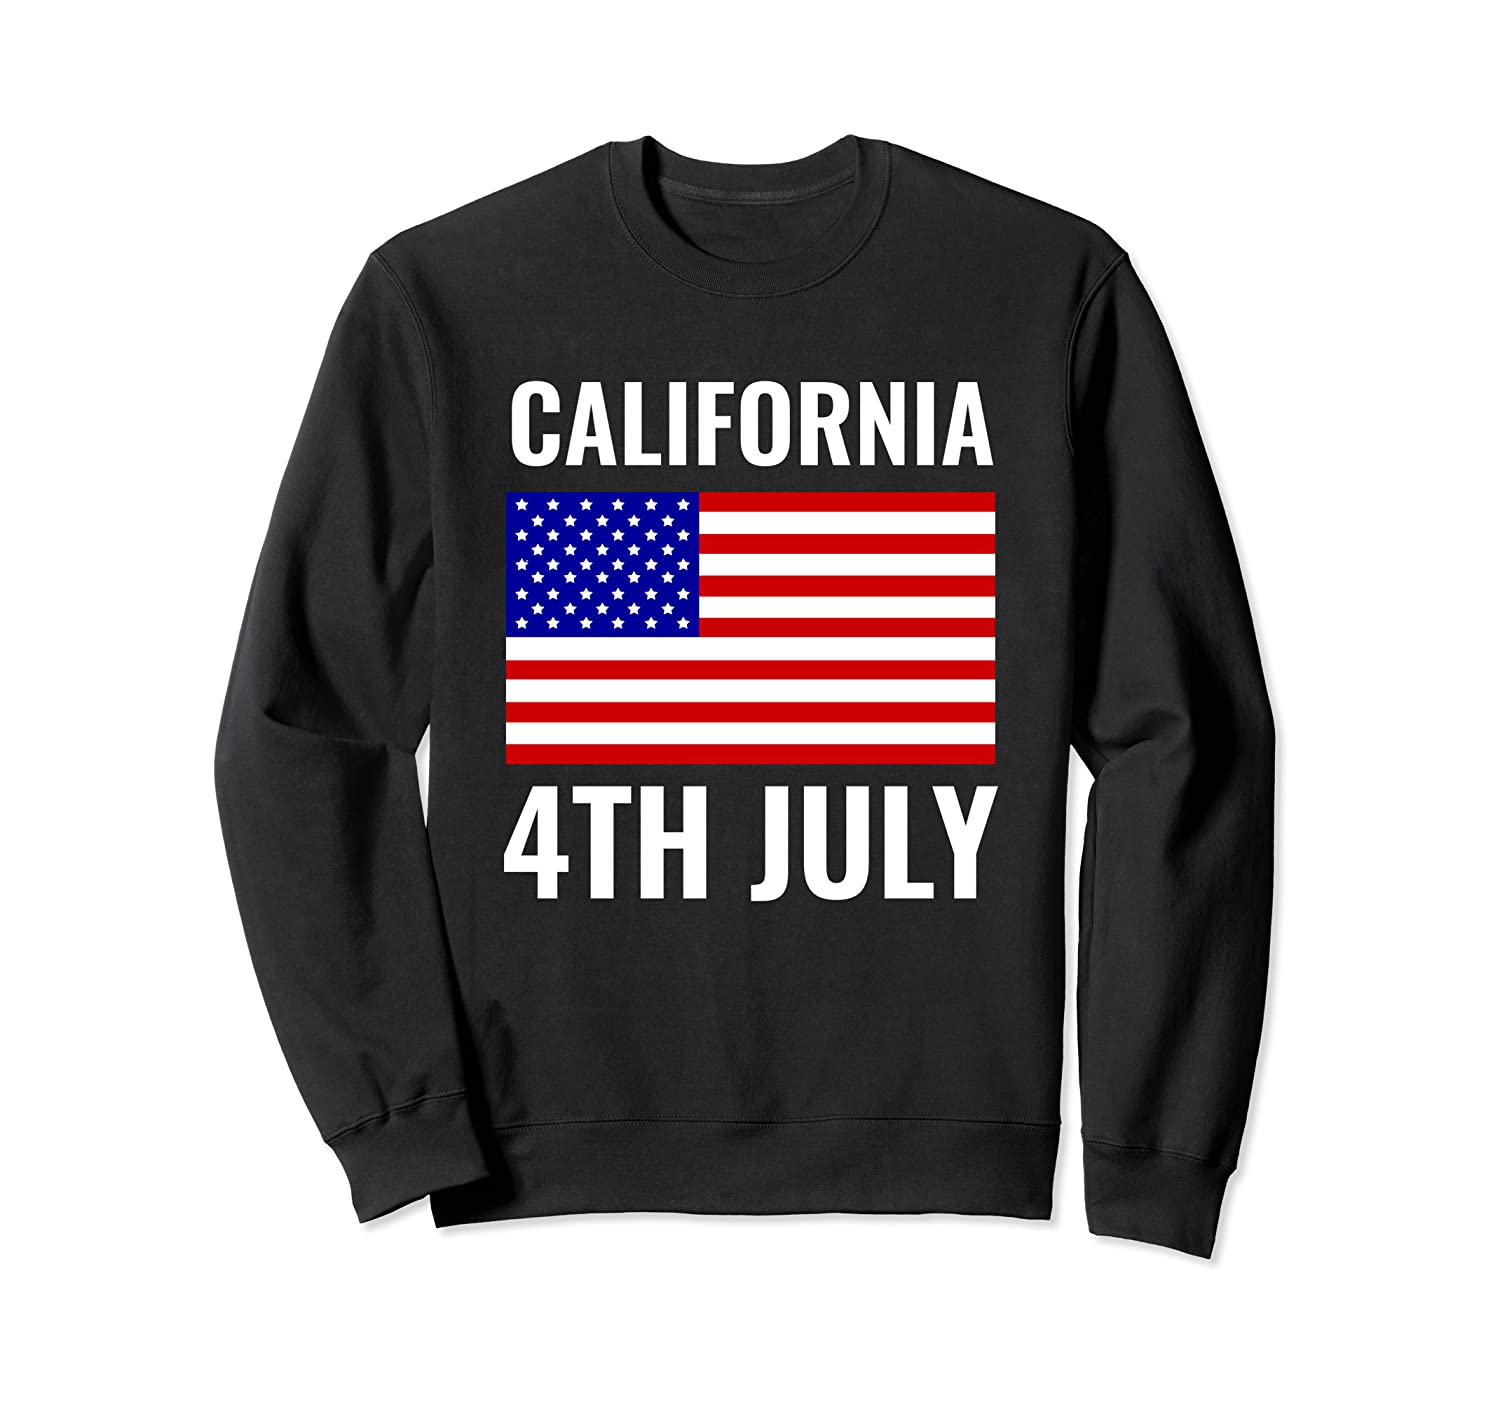 California Independence Day 4th July American Us Flag Gift Shirts